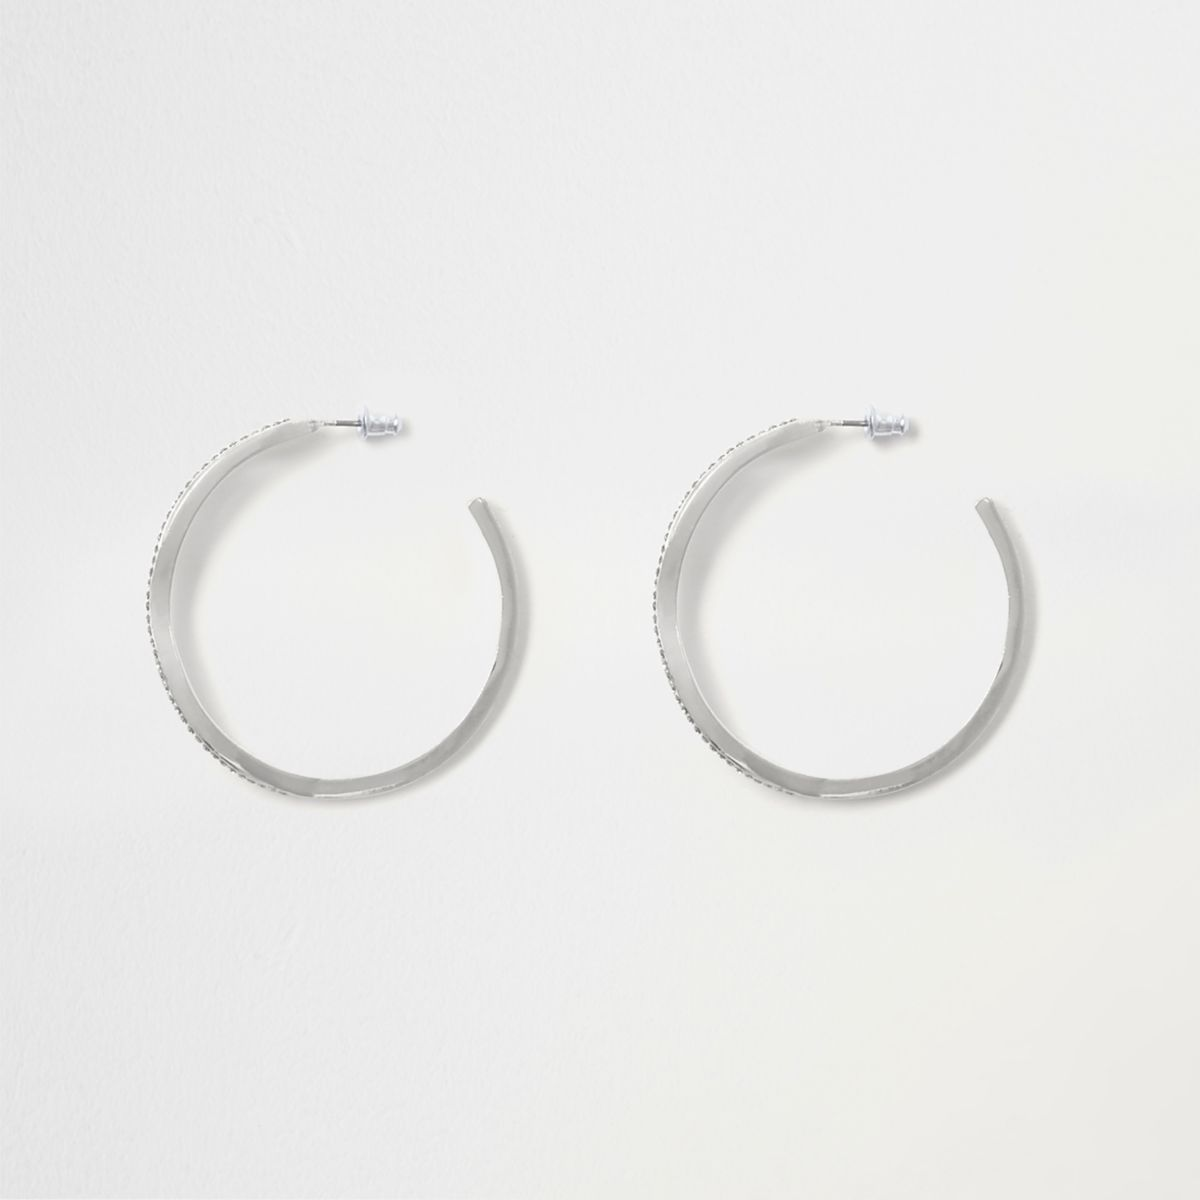 Silver tone diamante pave twist hoop earrings